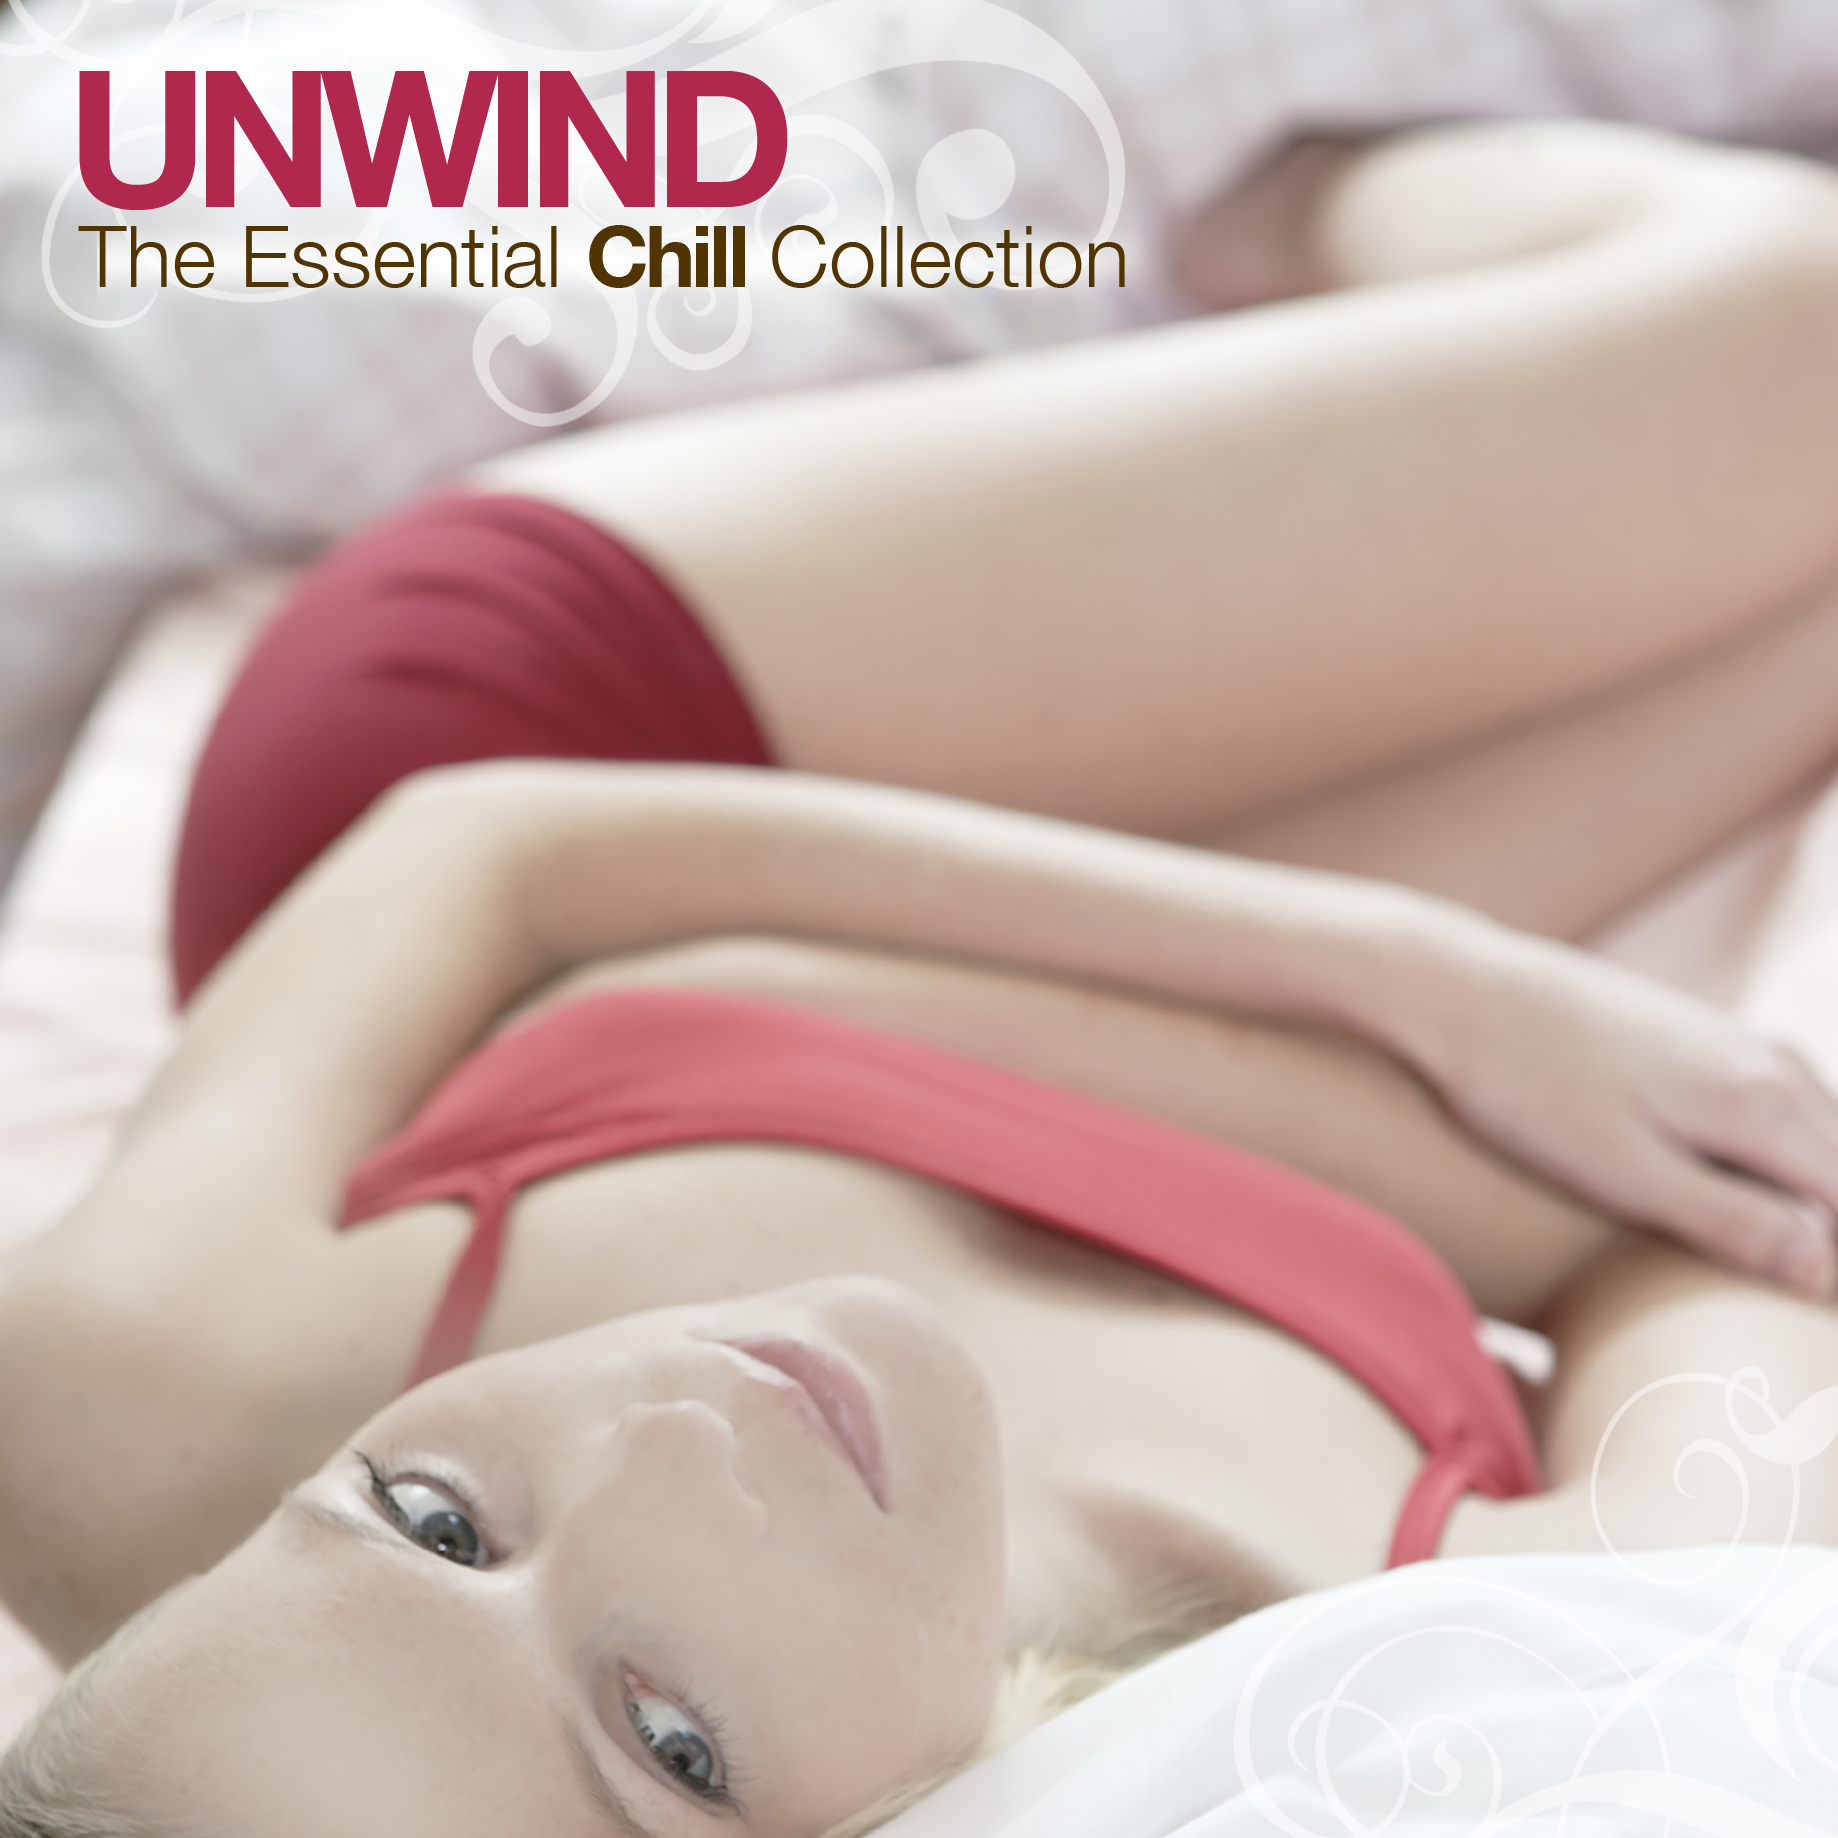 Unwind The Essential Chill Collection